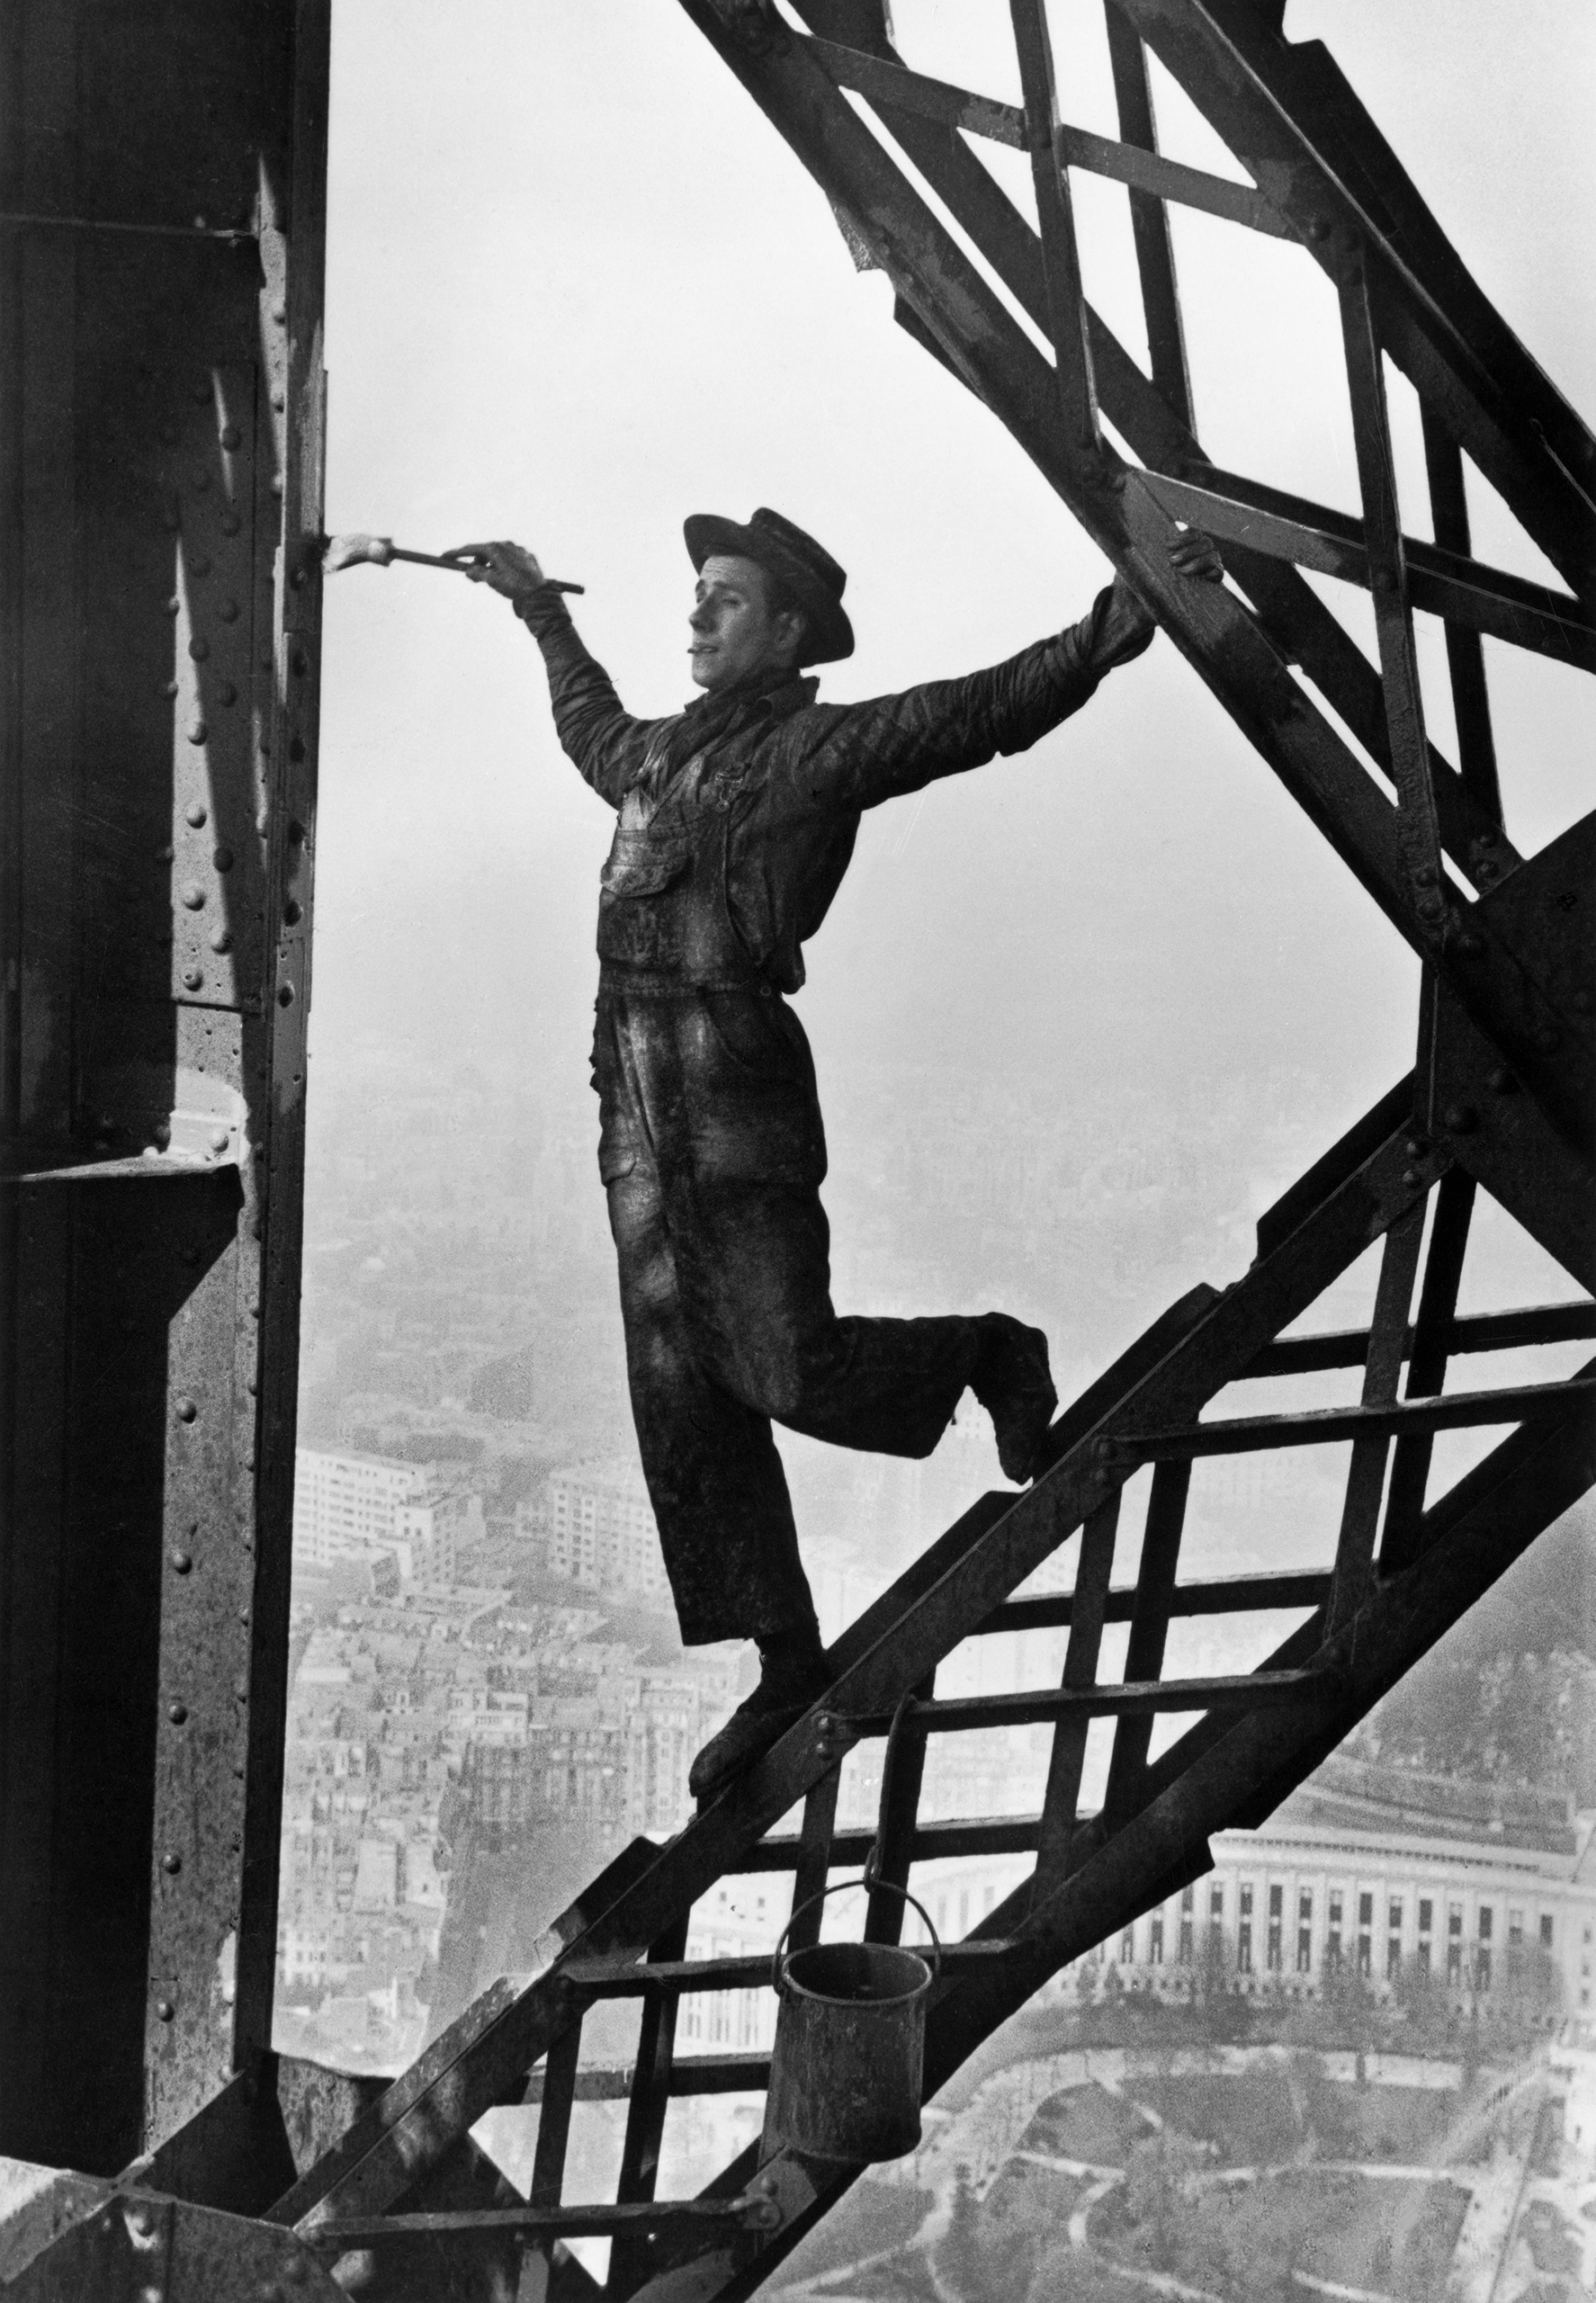 Zazou, the Eiffel Tower's painter, in Paris, 1953.